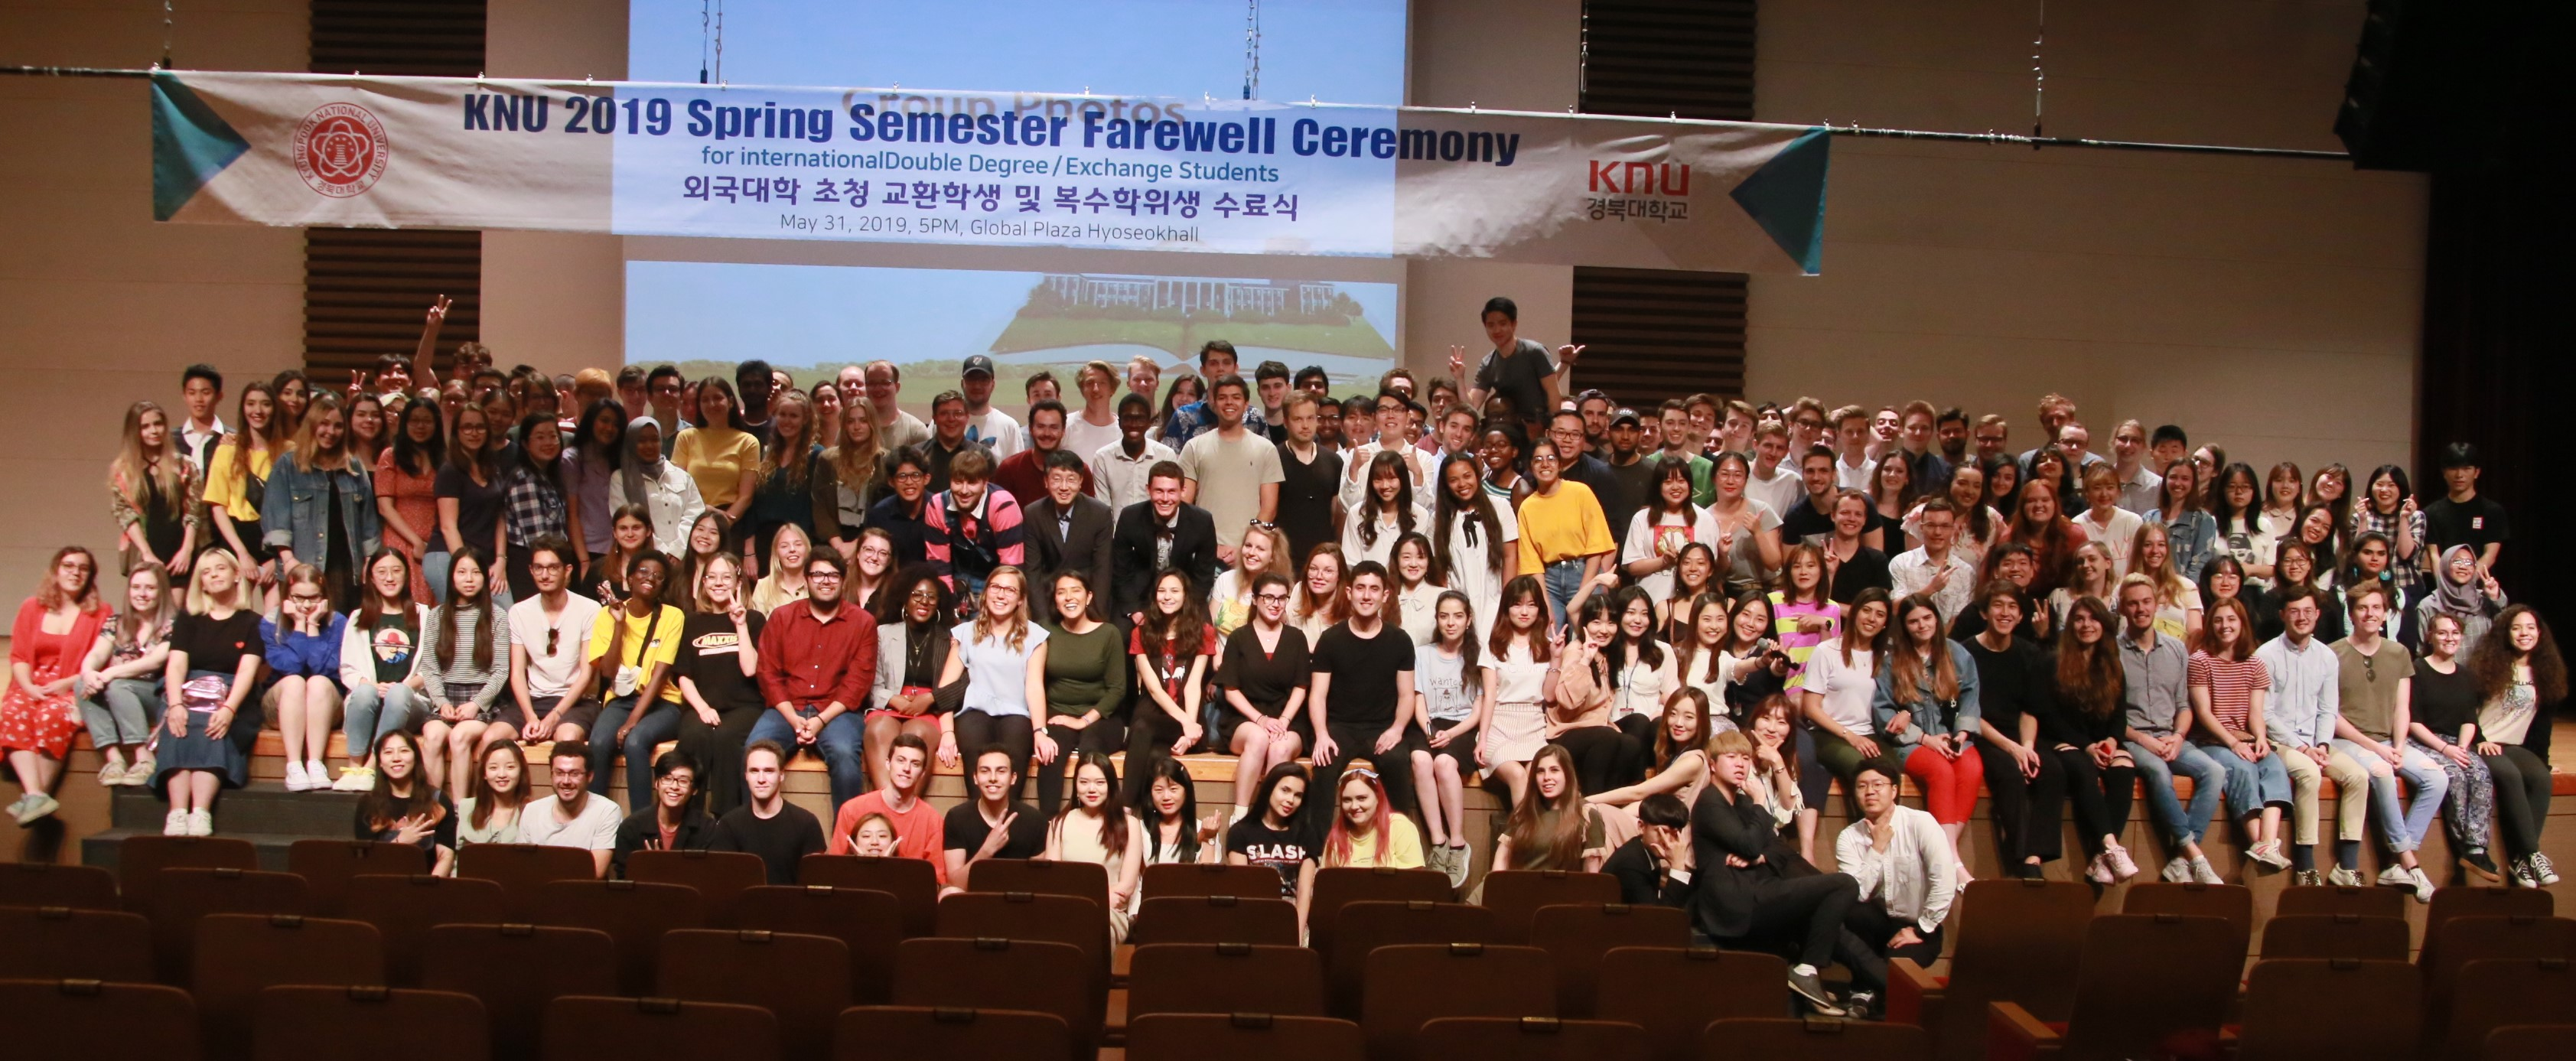 Spring 2019 Farewell Ceremony for International Exchange and Double degree Students 관련 이미지입니다.